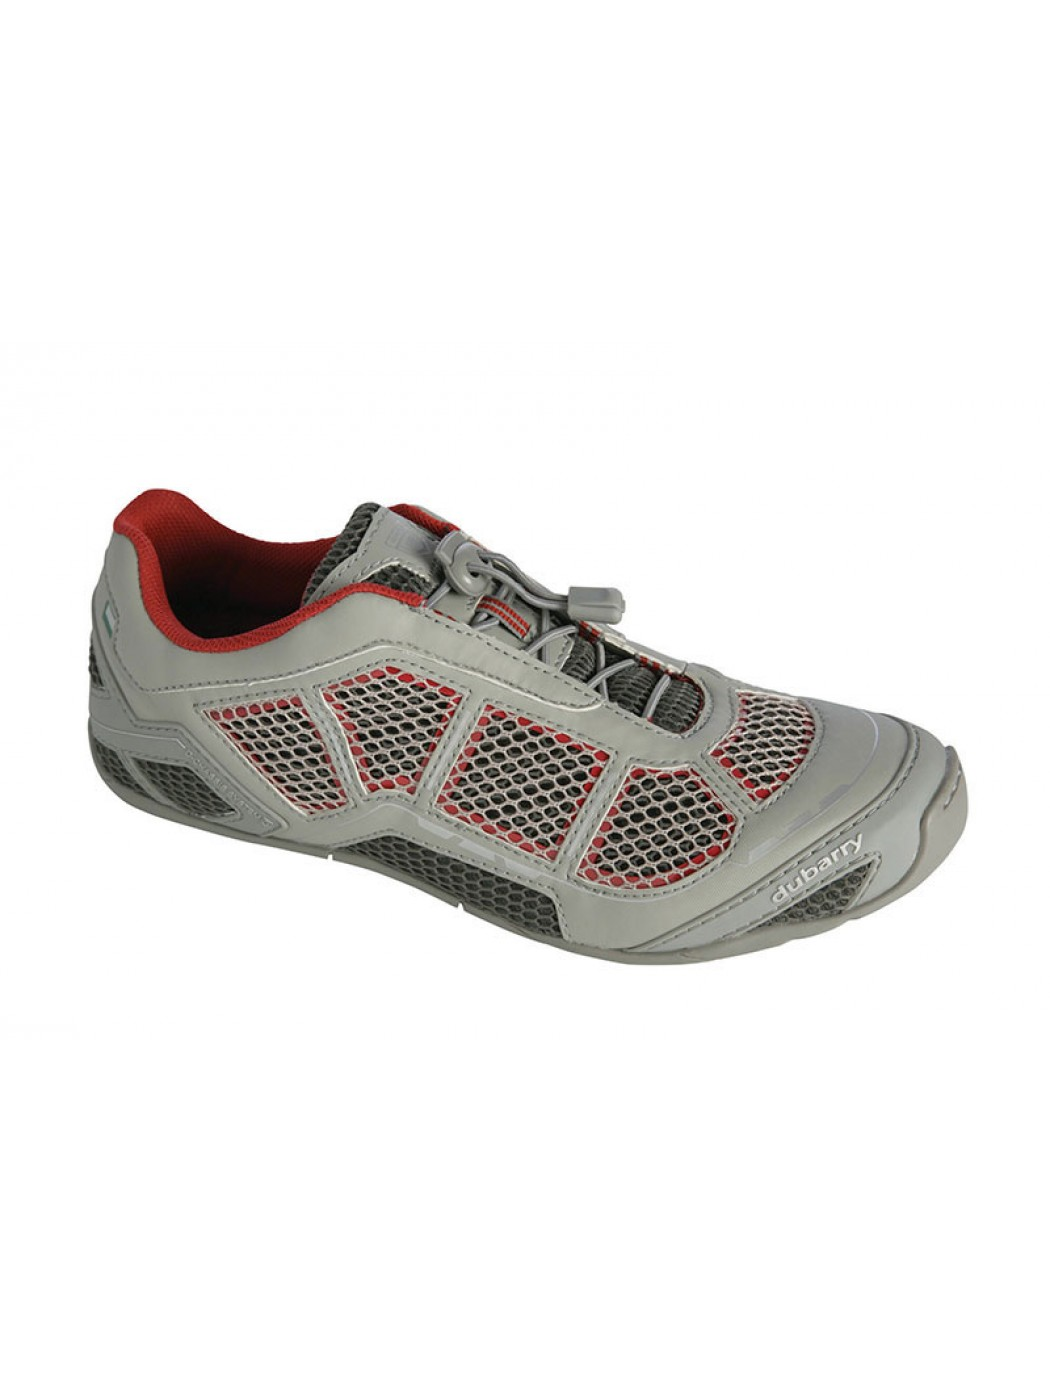 lahinch-aquasport-grey 1